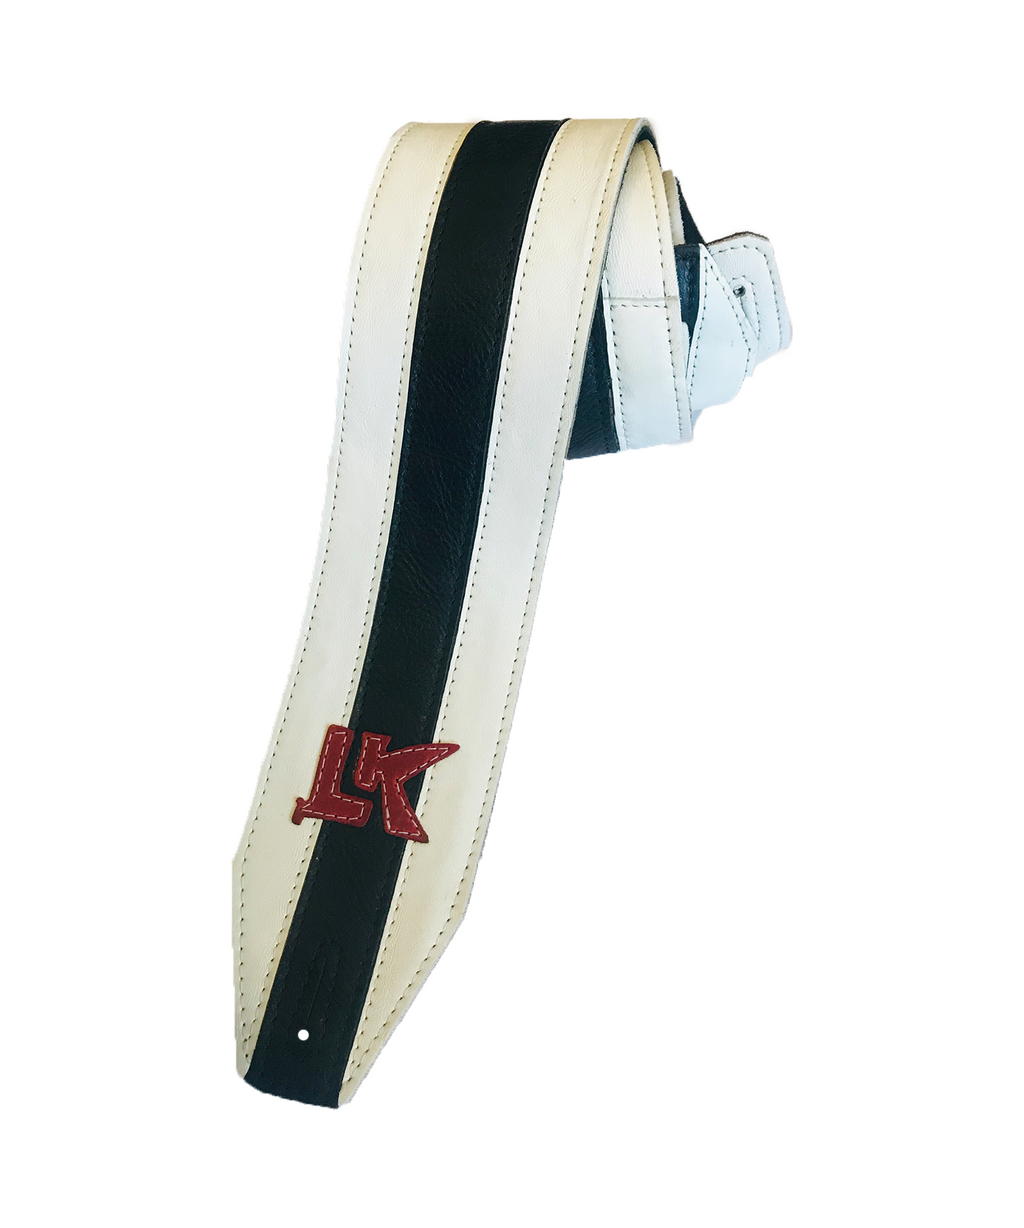 LK Race Car Stripes Strap